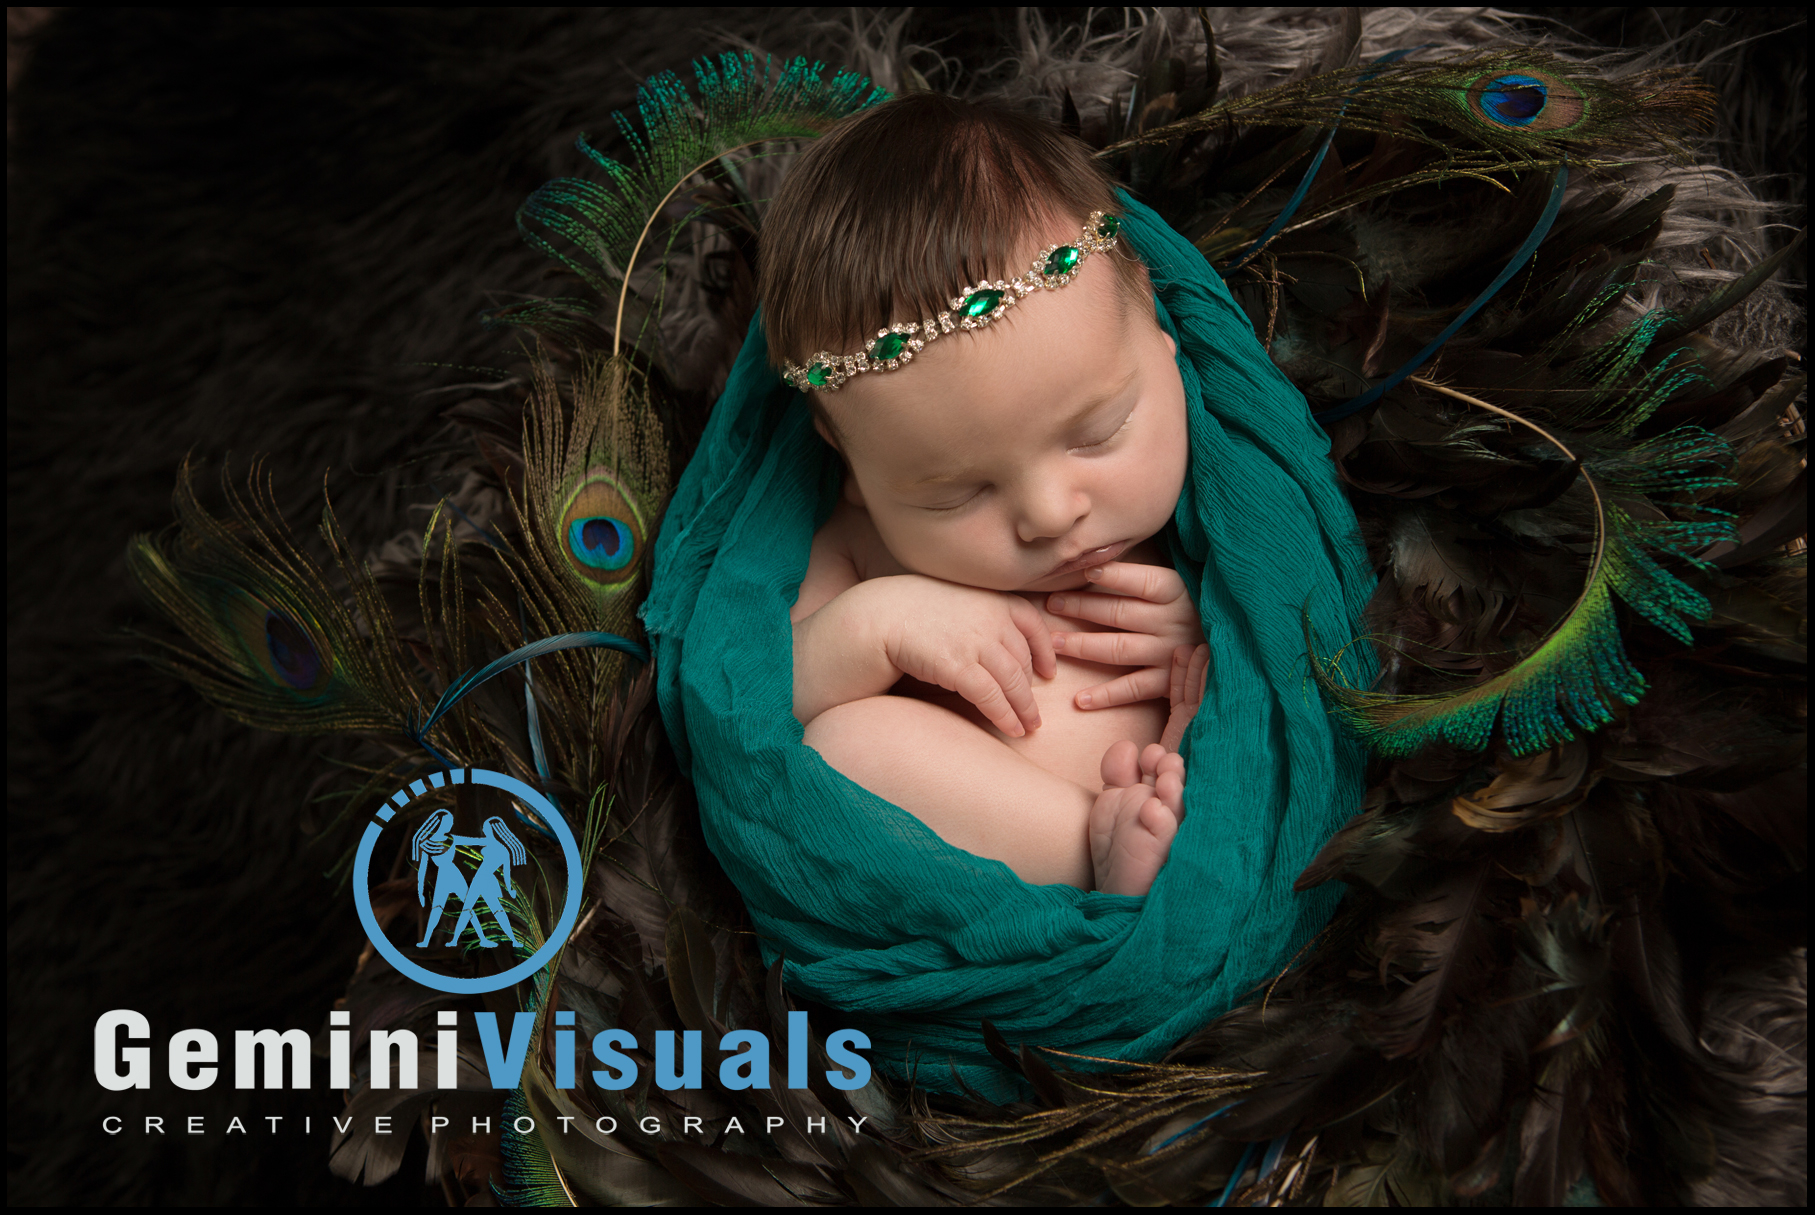 Gemini Visuals Creative Photography in Surrey